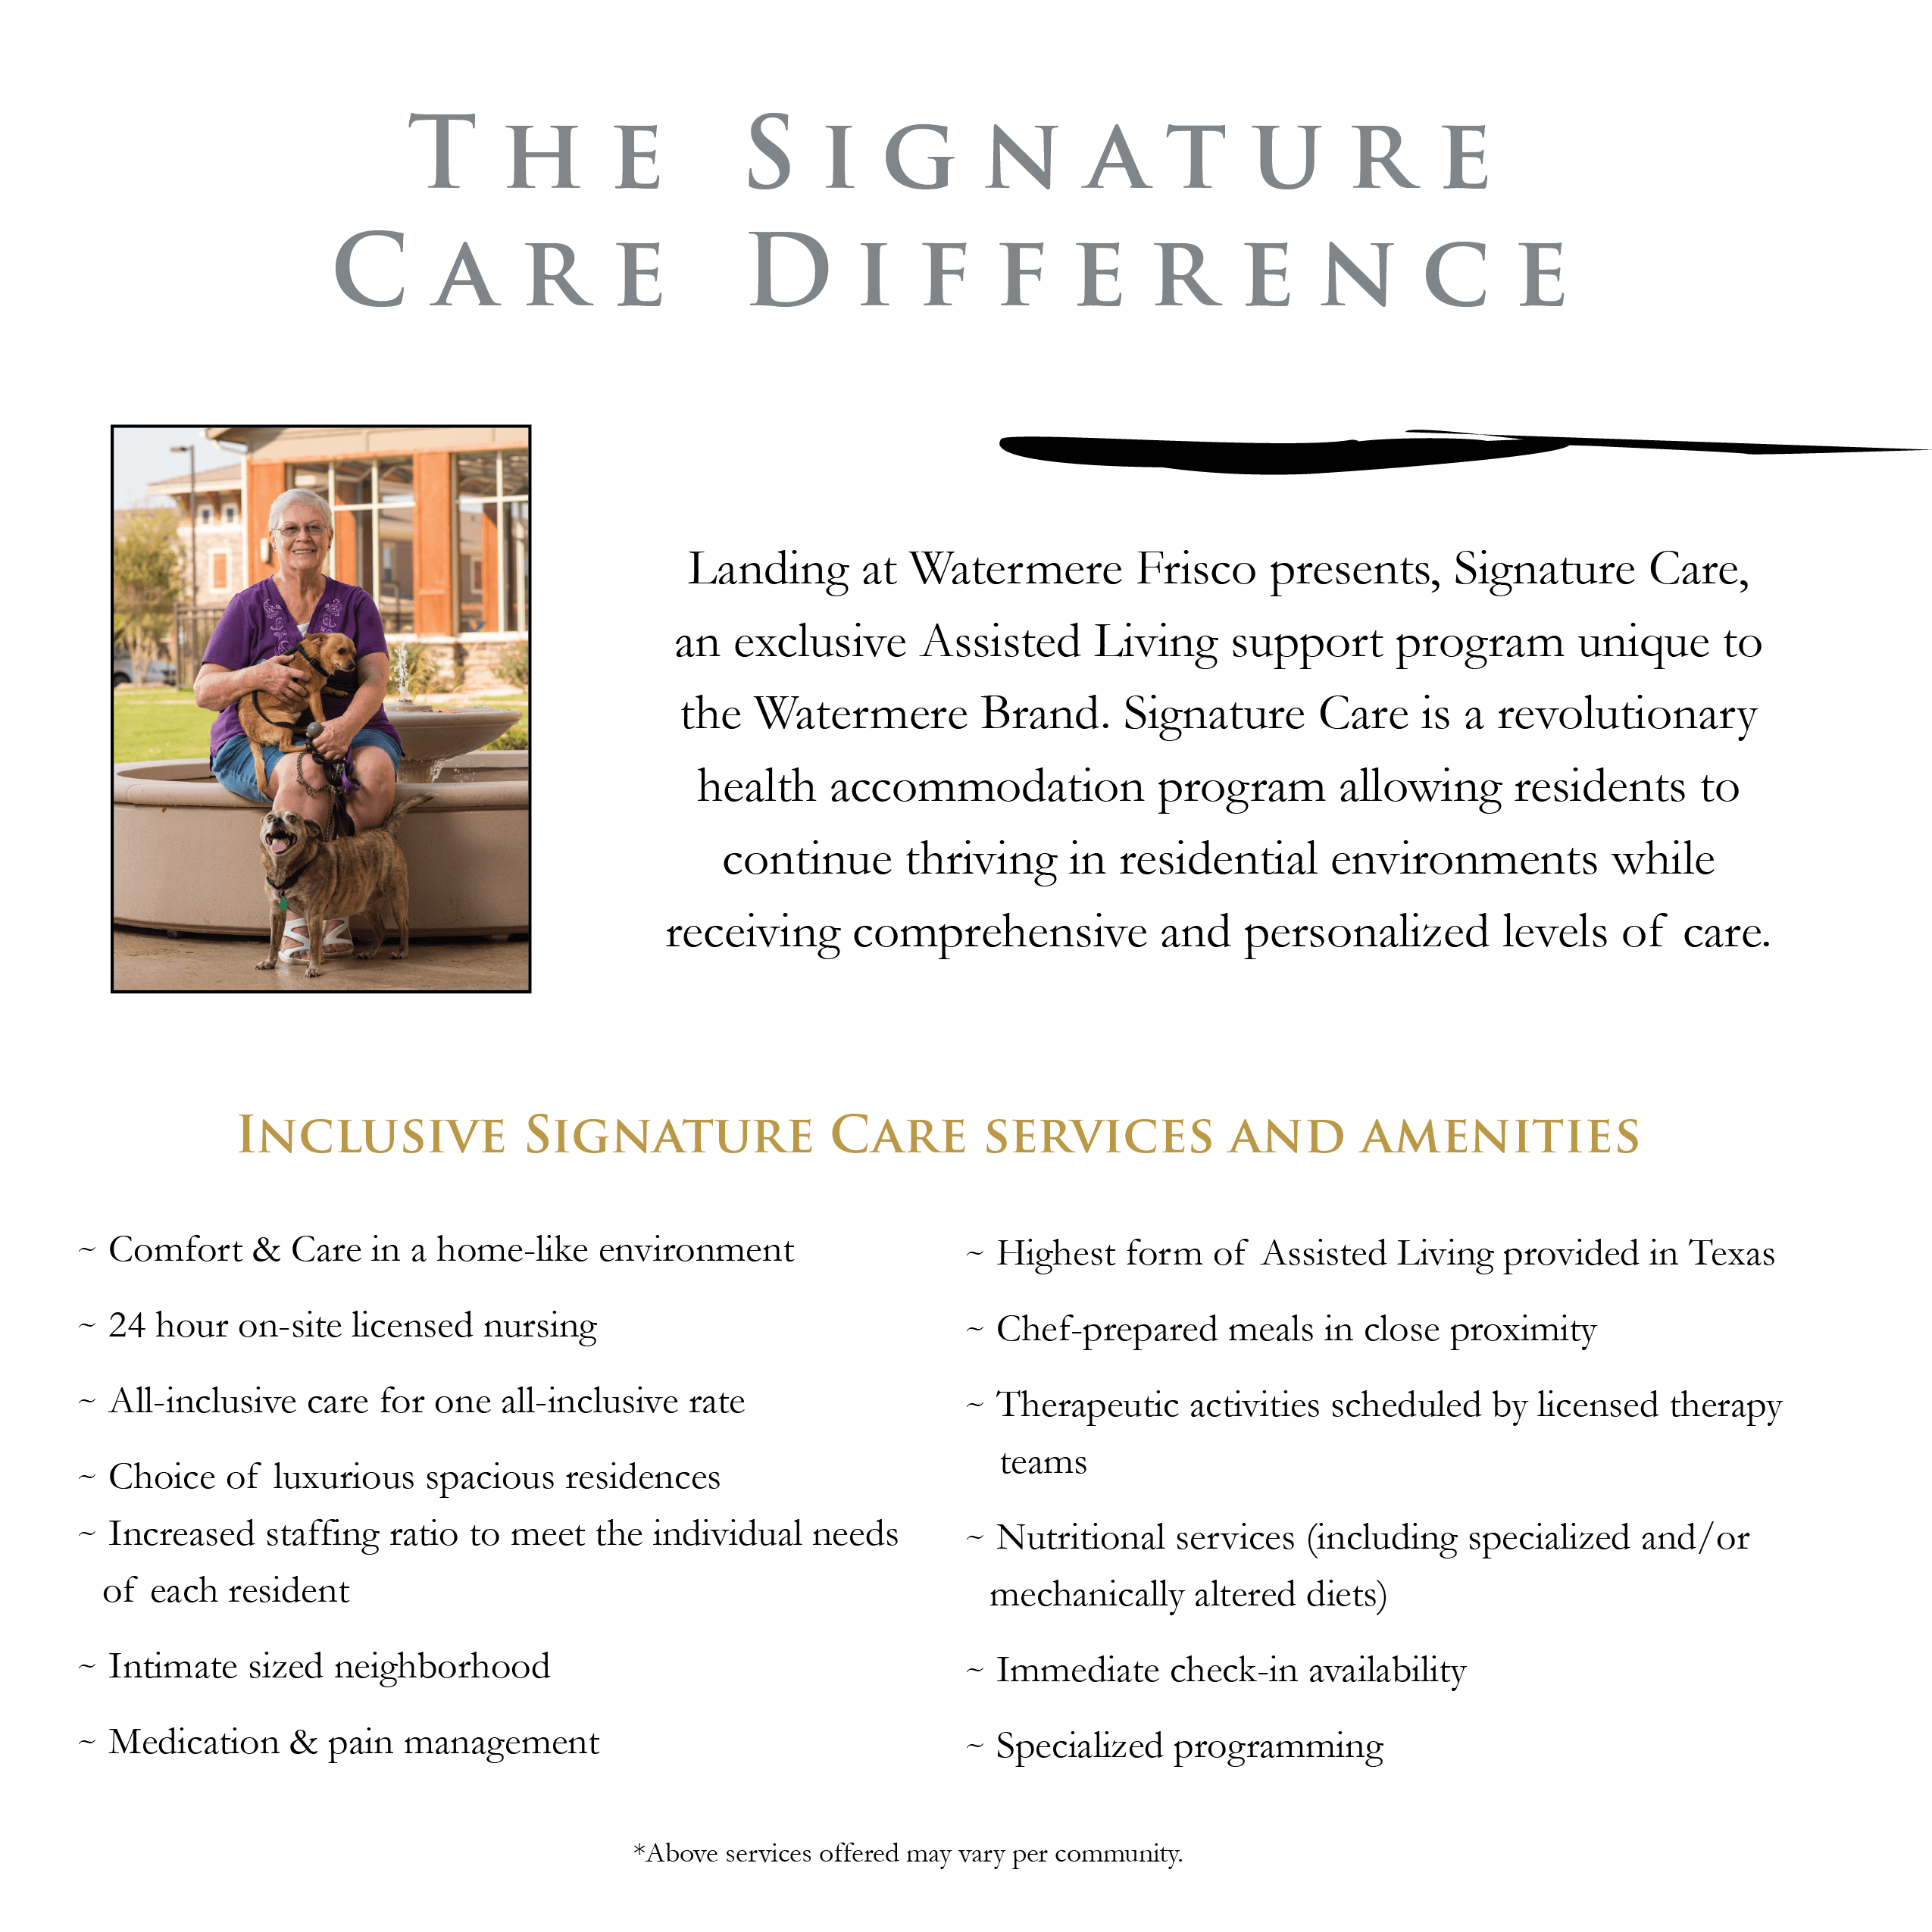 The Signature Care Difference